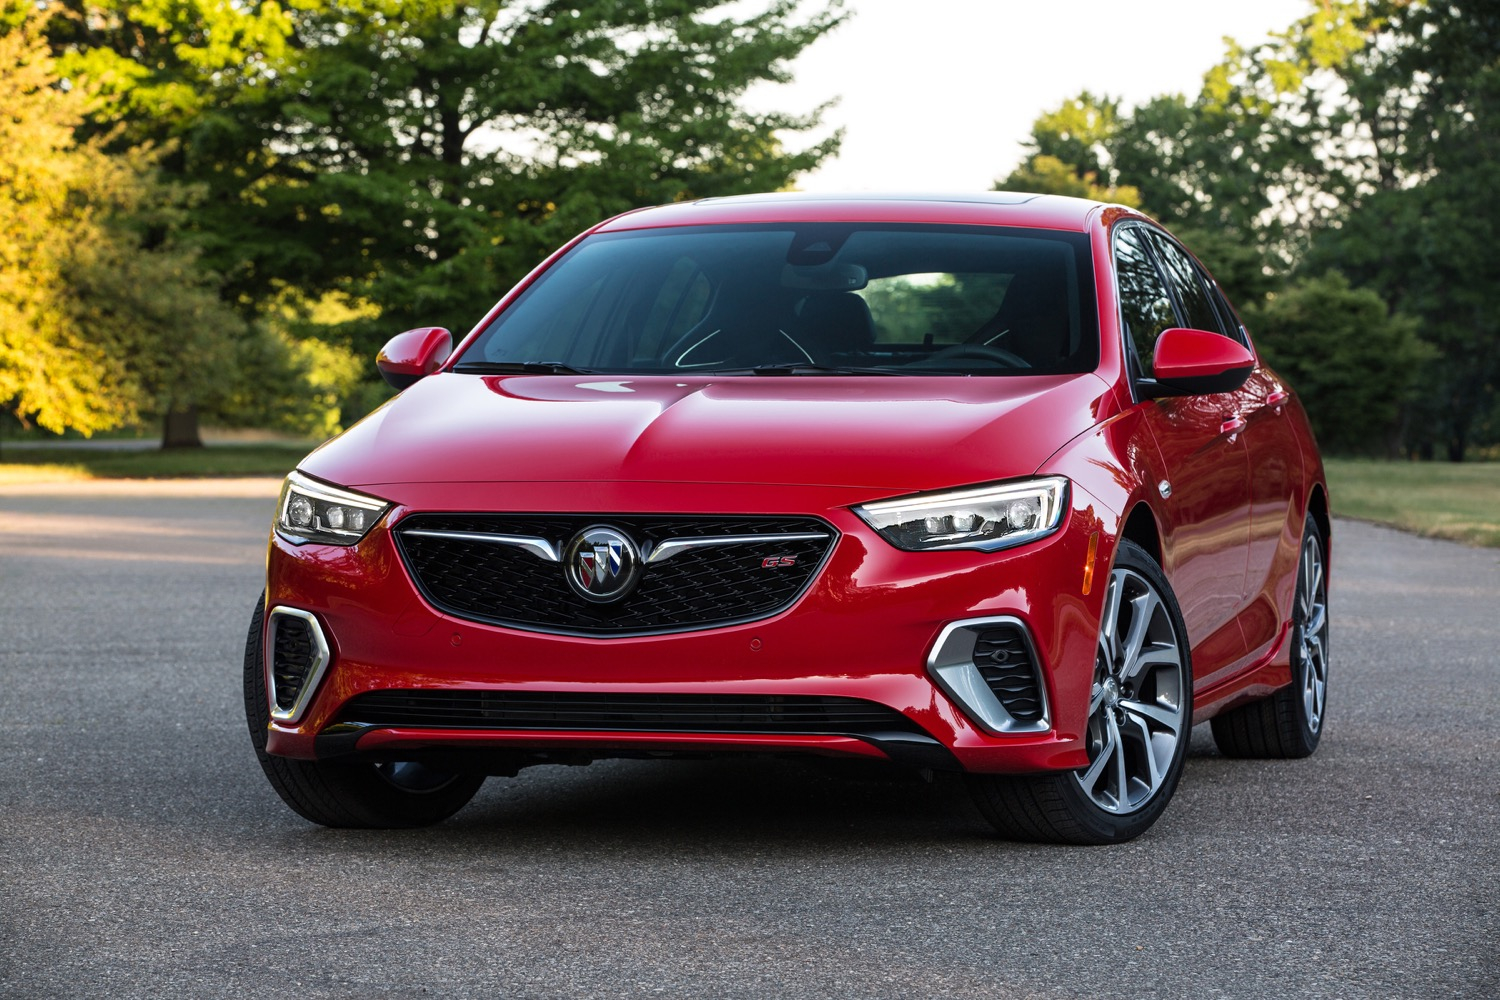 We Have Some Beef With This 2018 Buick Regal Gs Review | Gm New 2022 Buick Regal Sportback Specs, Used, 0-60